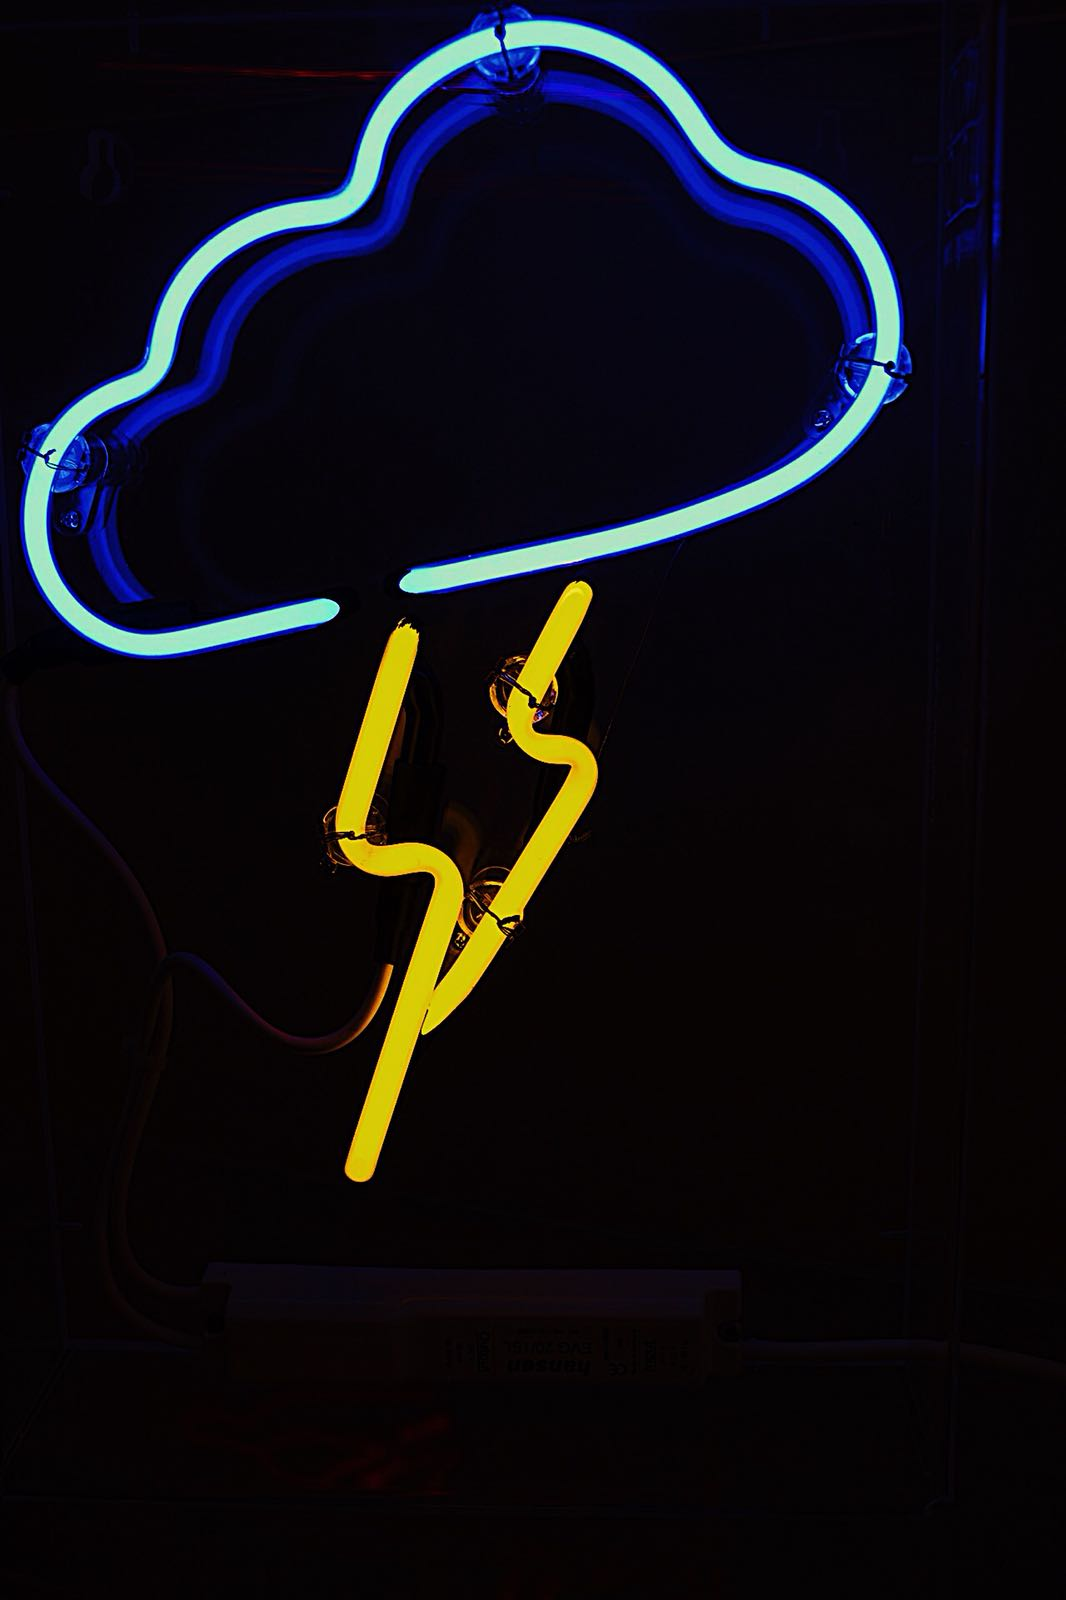 stormy neon light cloud